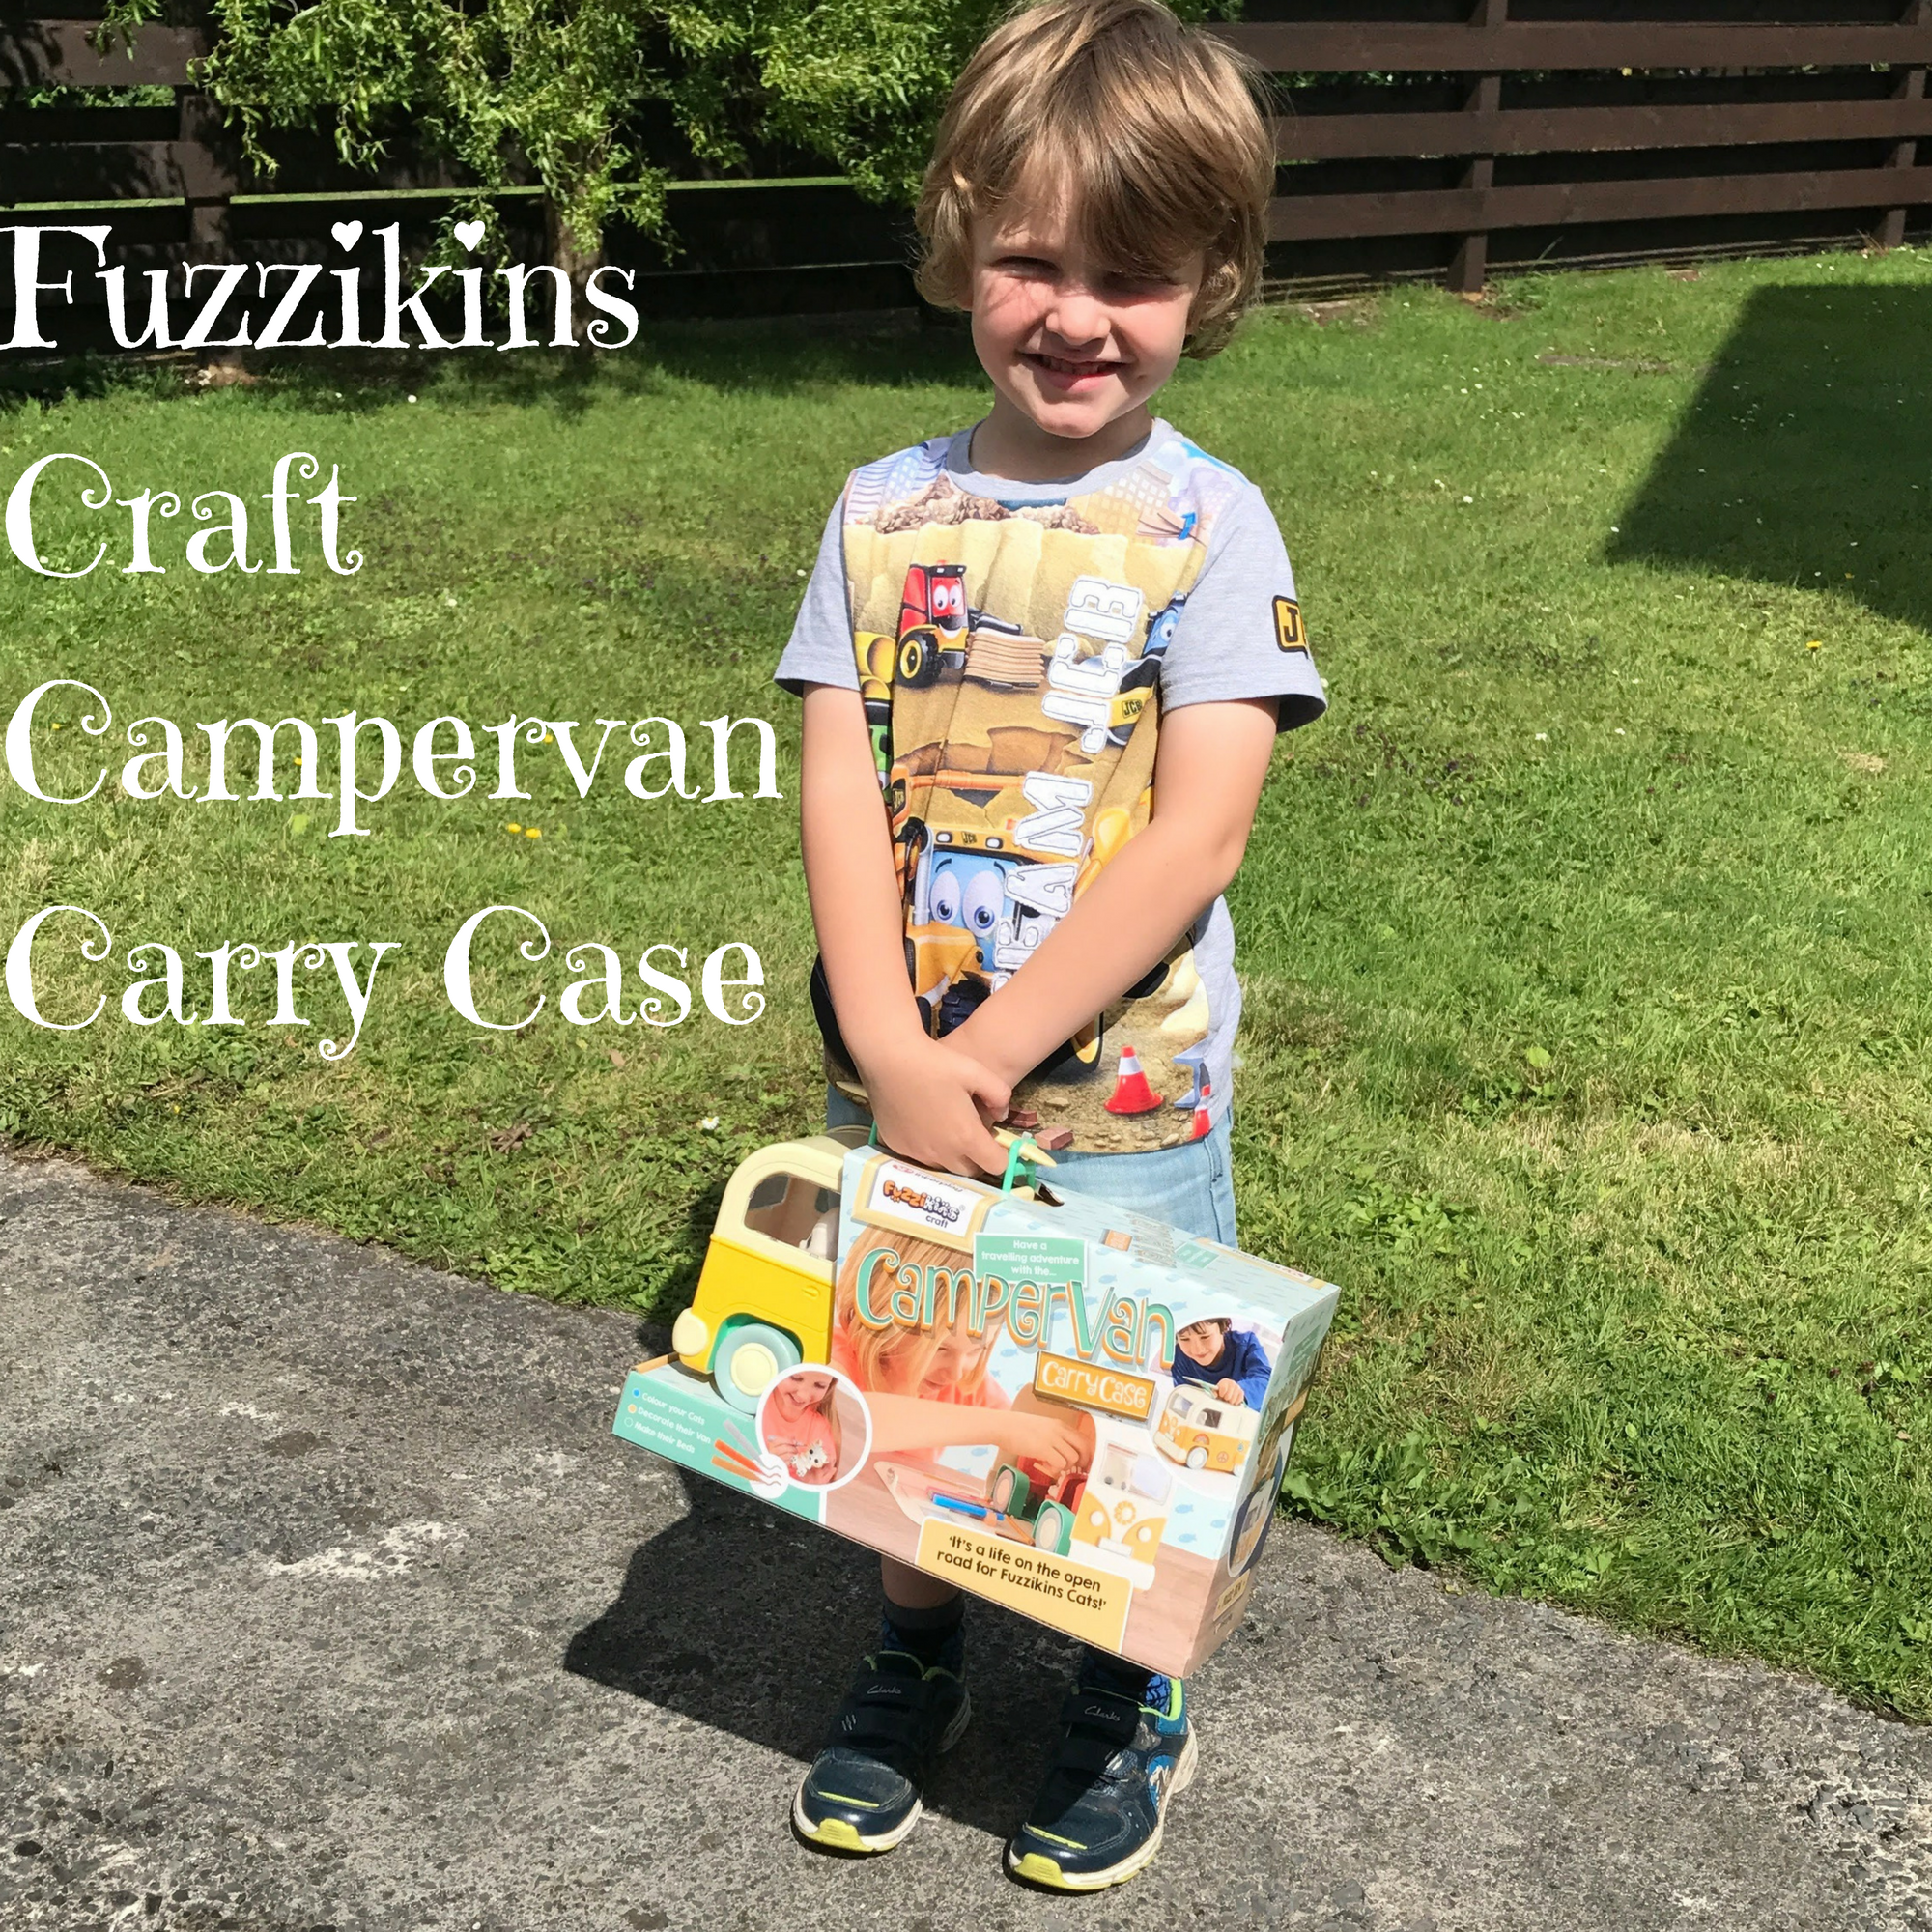 Fuzzikins Craft Campervan Carry Case